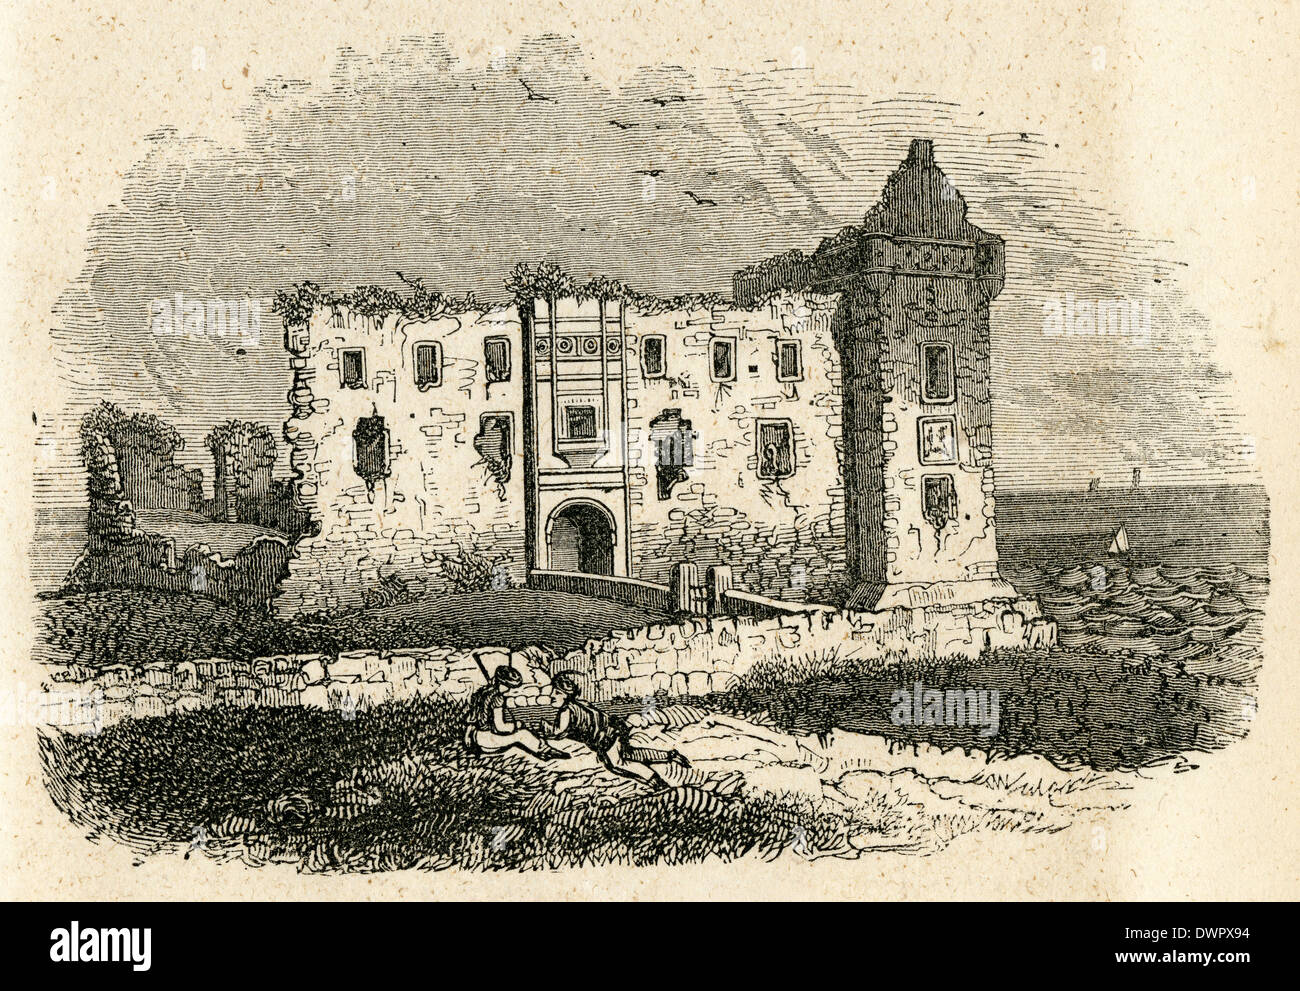 Circa 1860 antique engraving, Castle of St. Andrew's in Fife, Scotland. - Stock Image